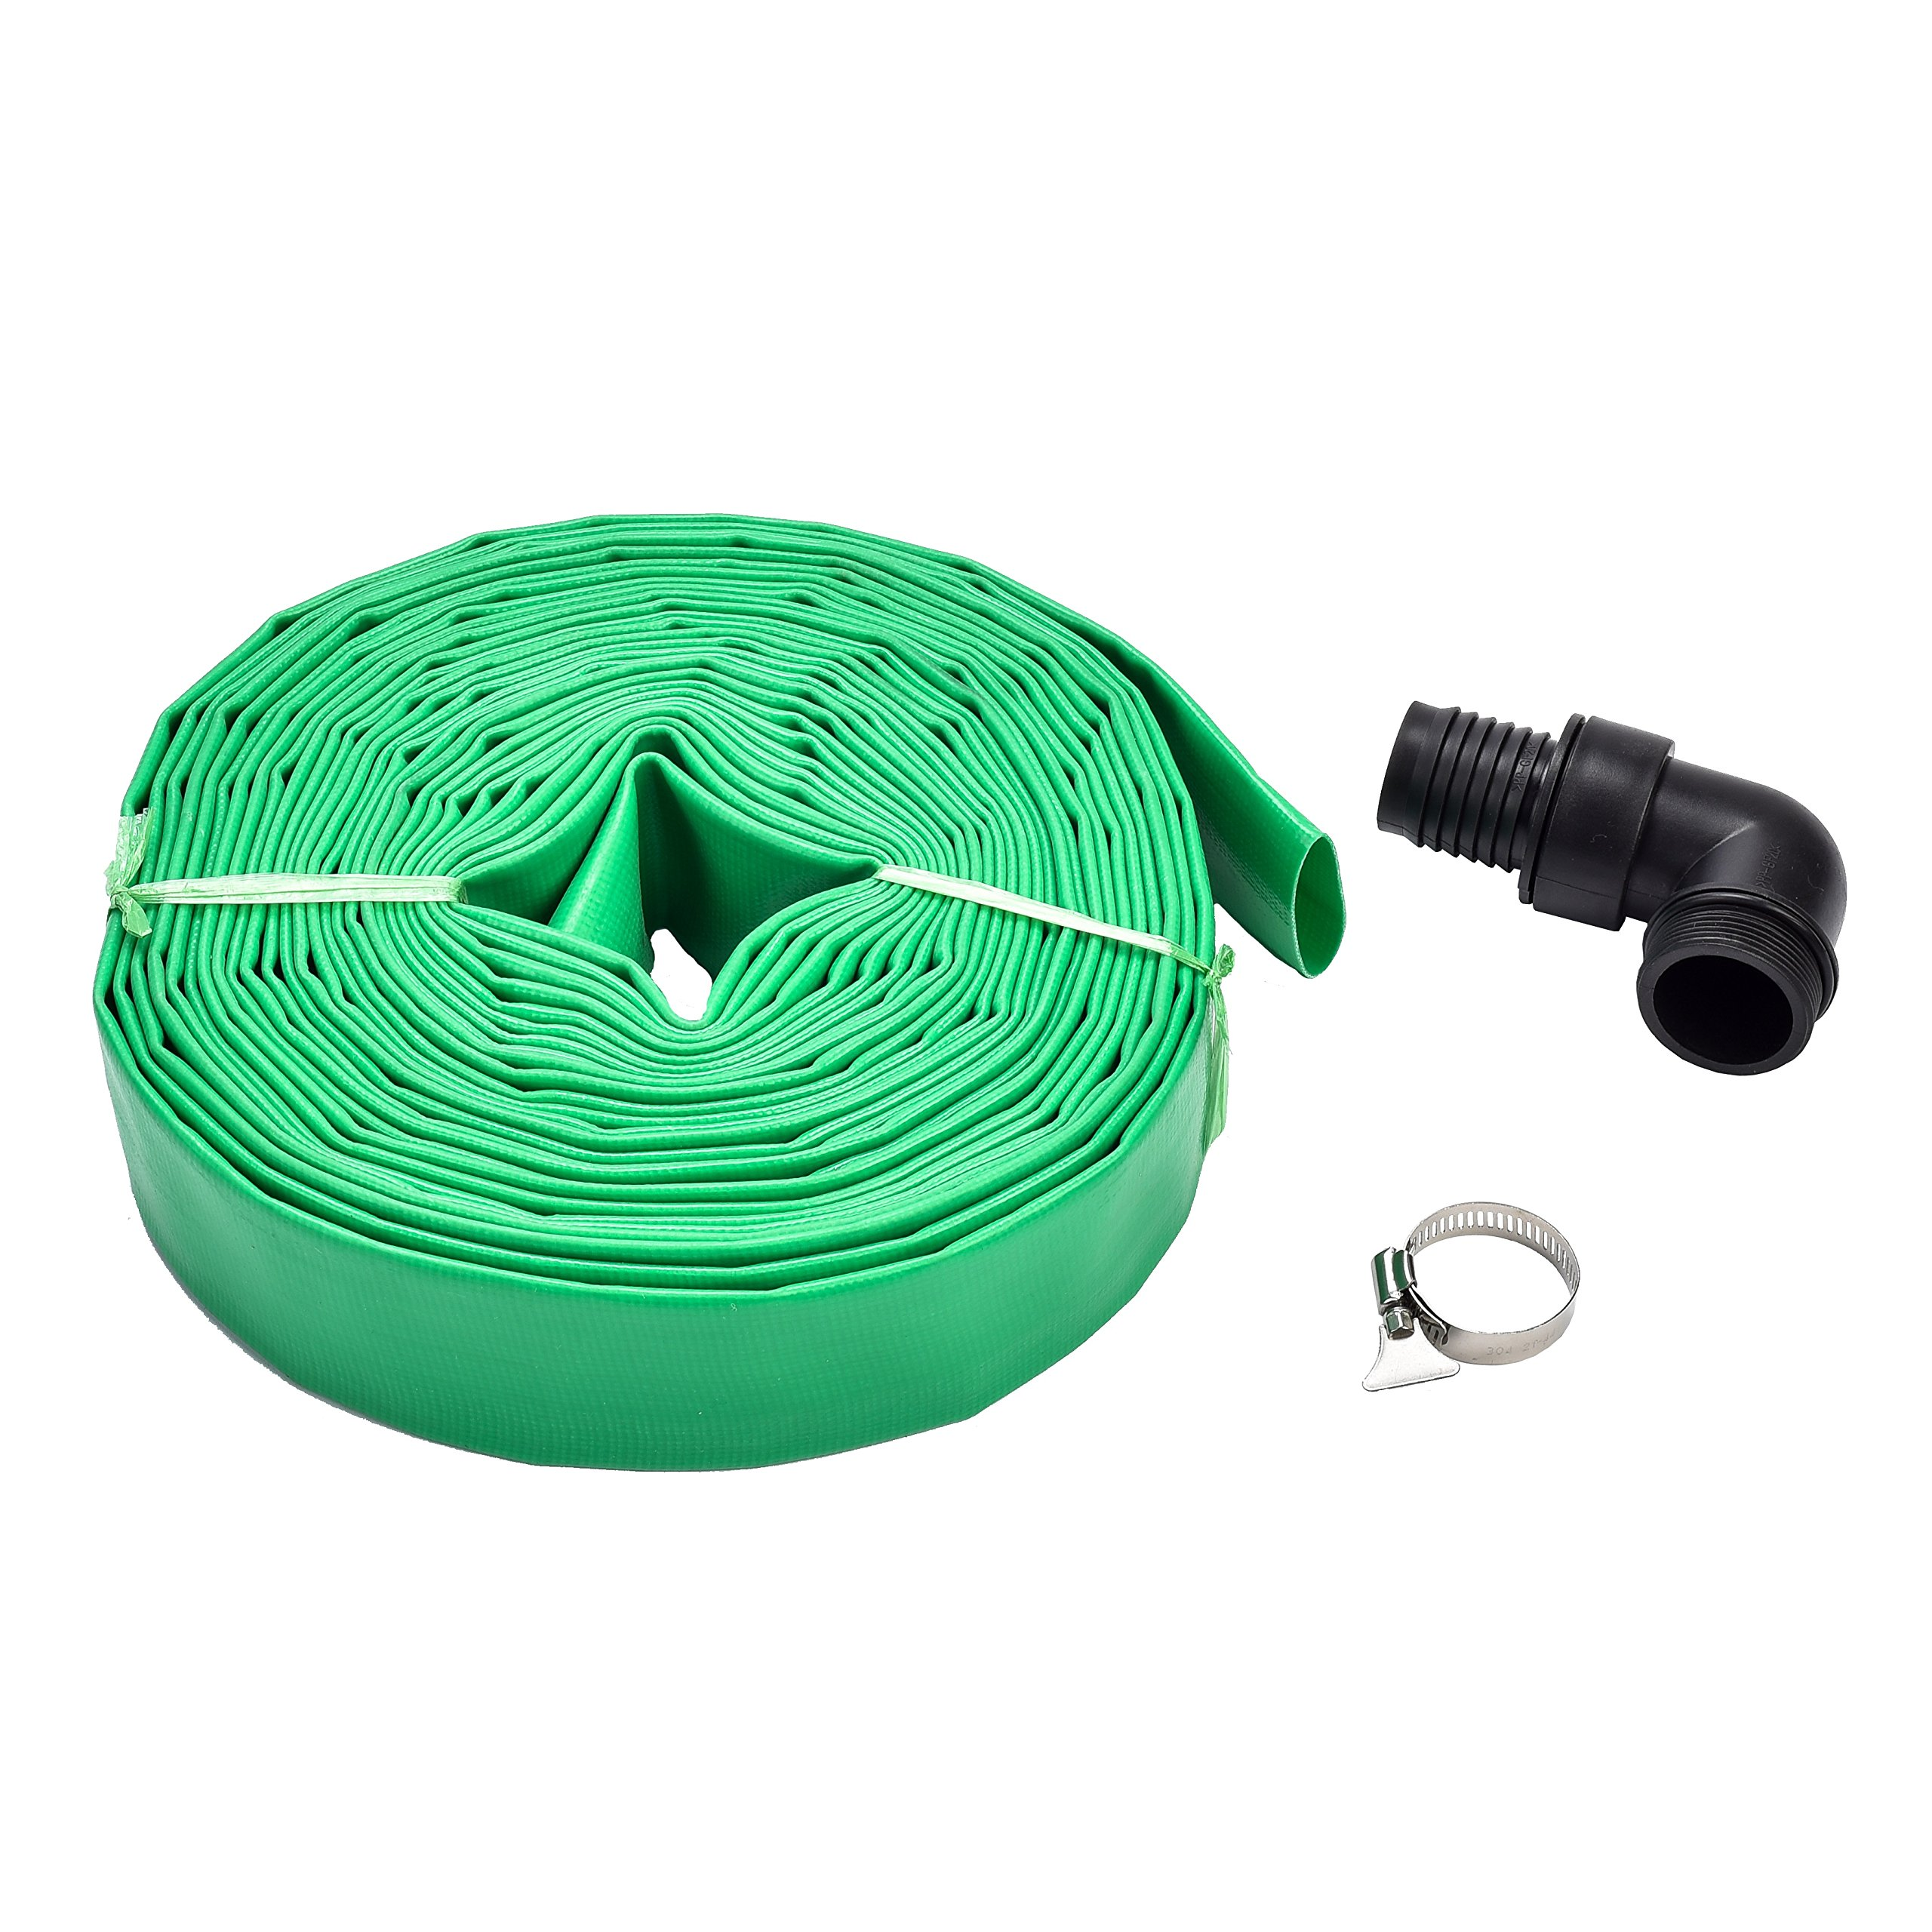 Fluent Power PVC Lay Flat Discharge Hose Kit 1-1/2''x49ft Including Sump Pump 1.5'' Adapter and Stainless Clamp